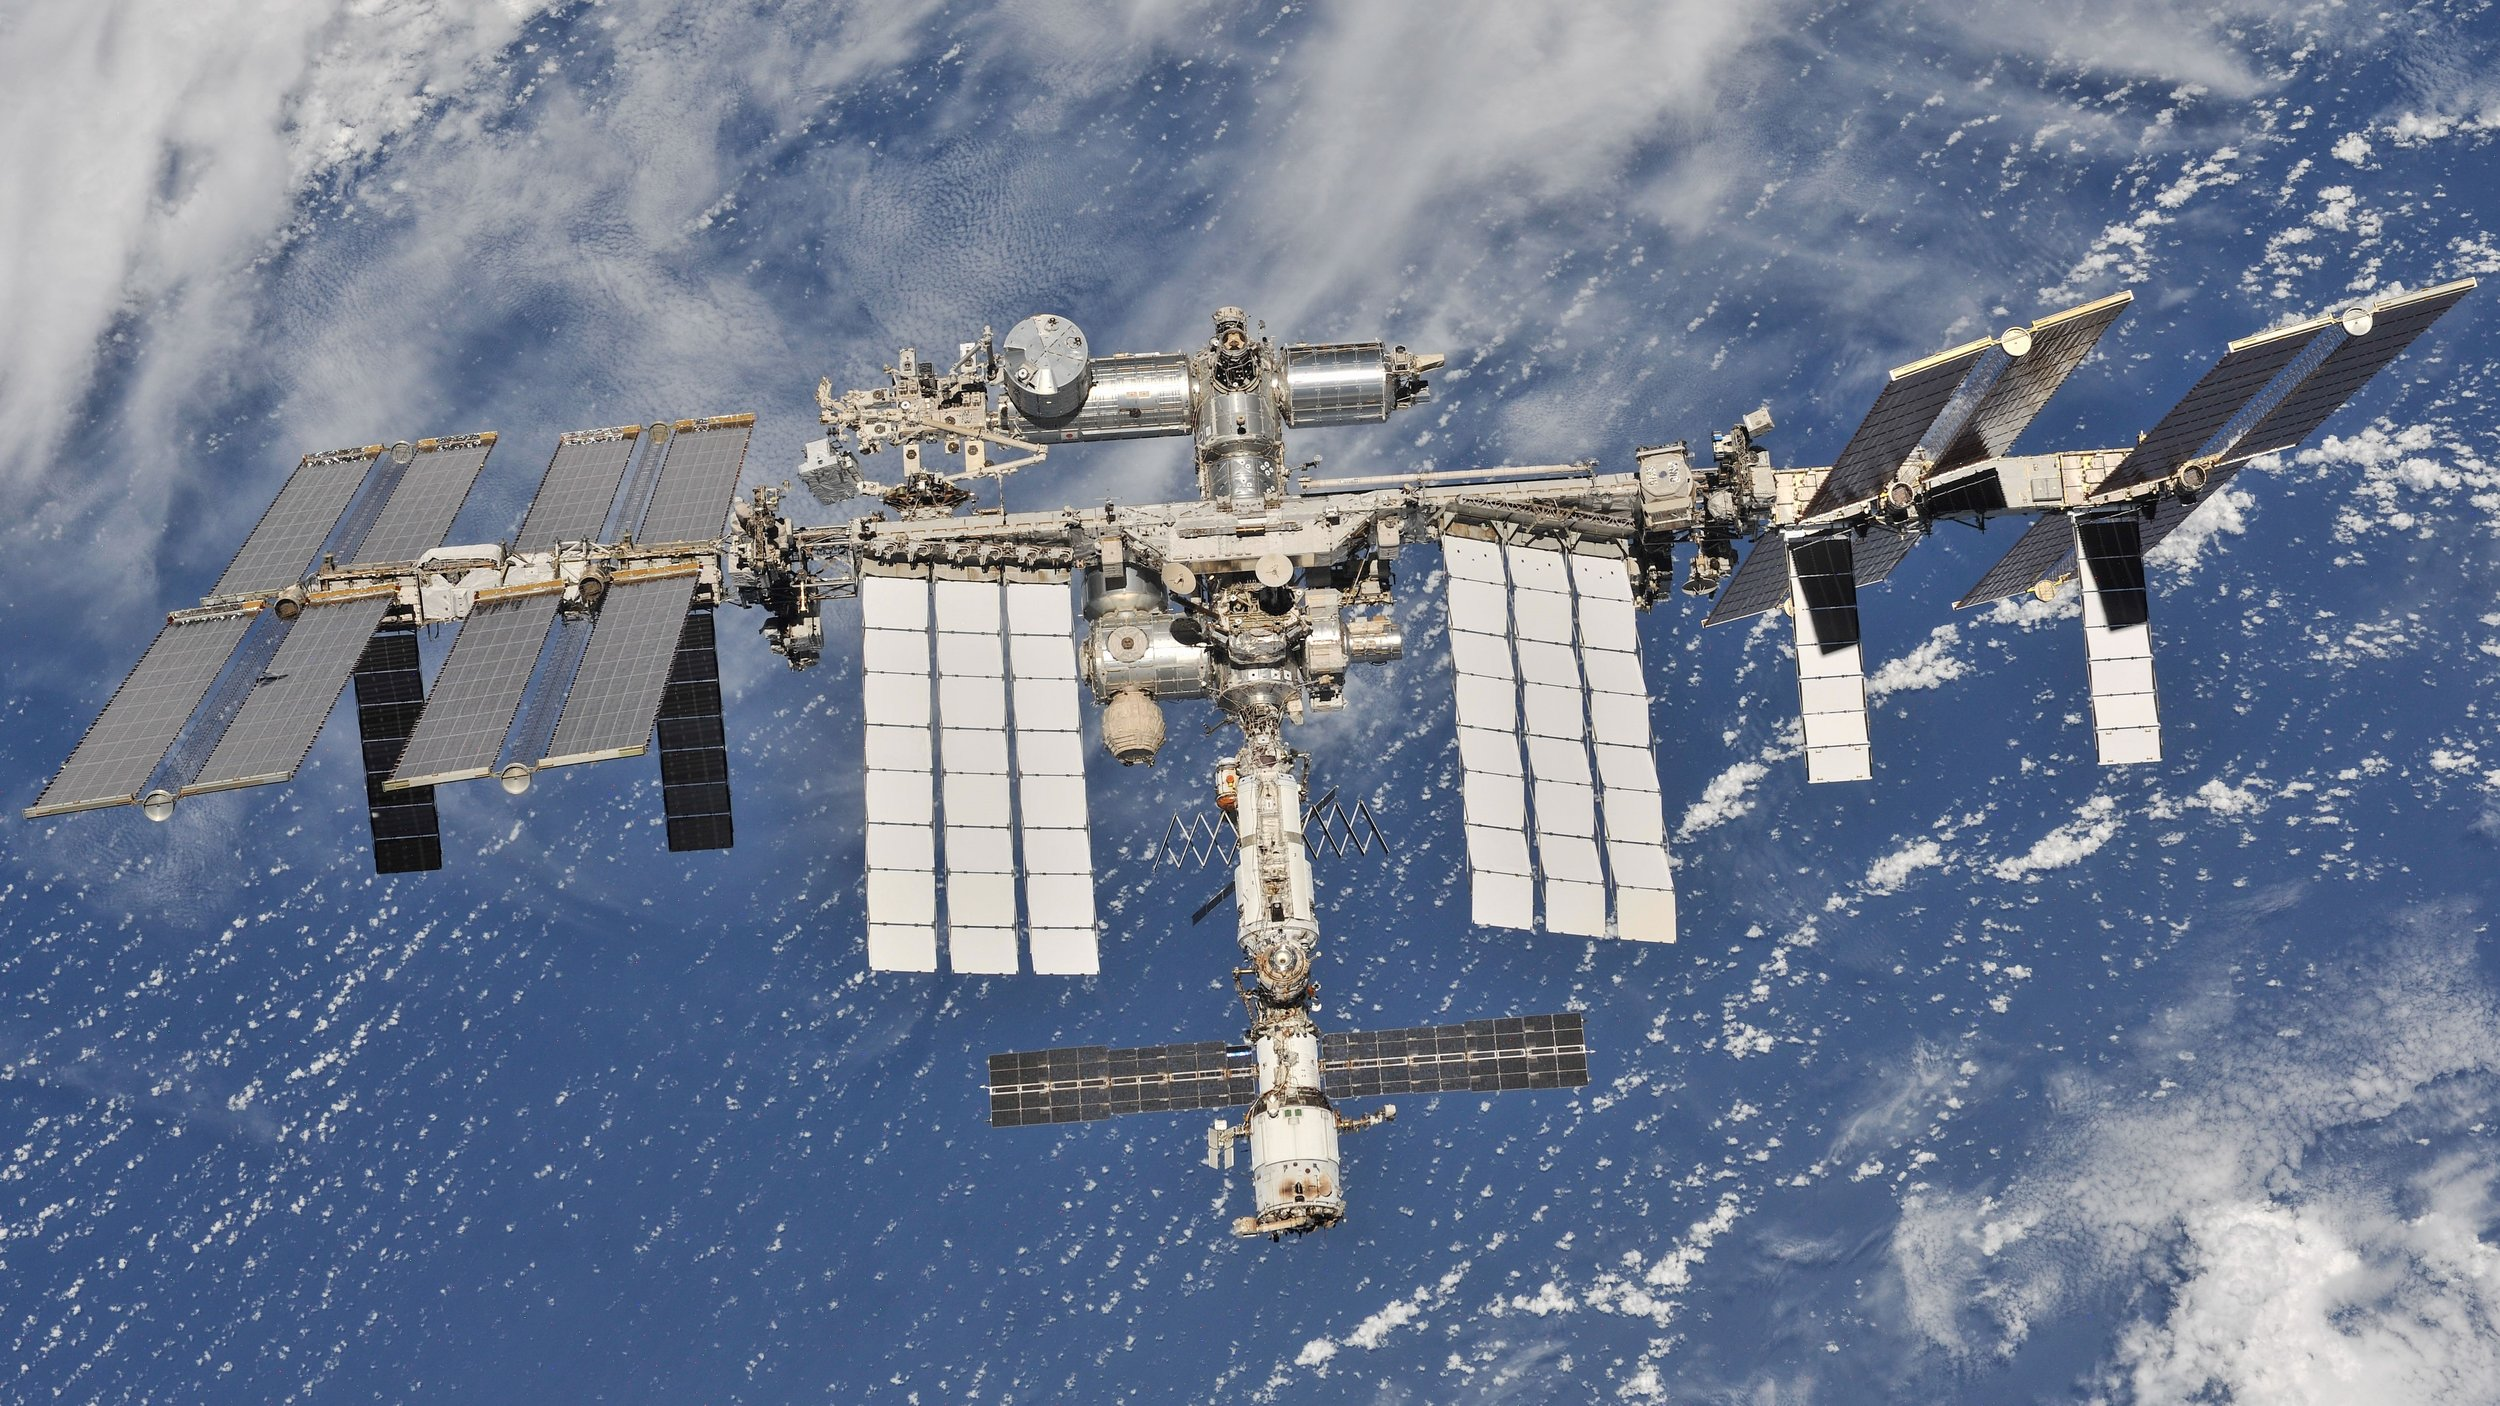 The International Space Station in October 2018. Credit: NASA